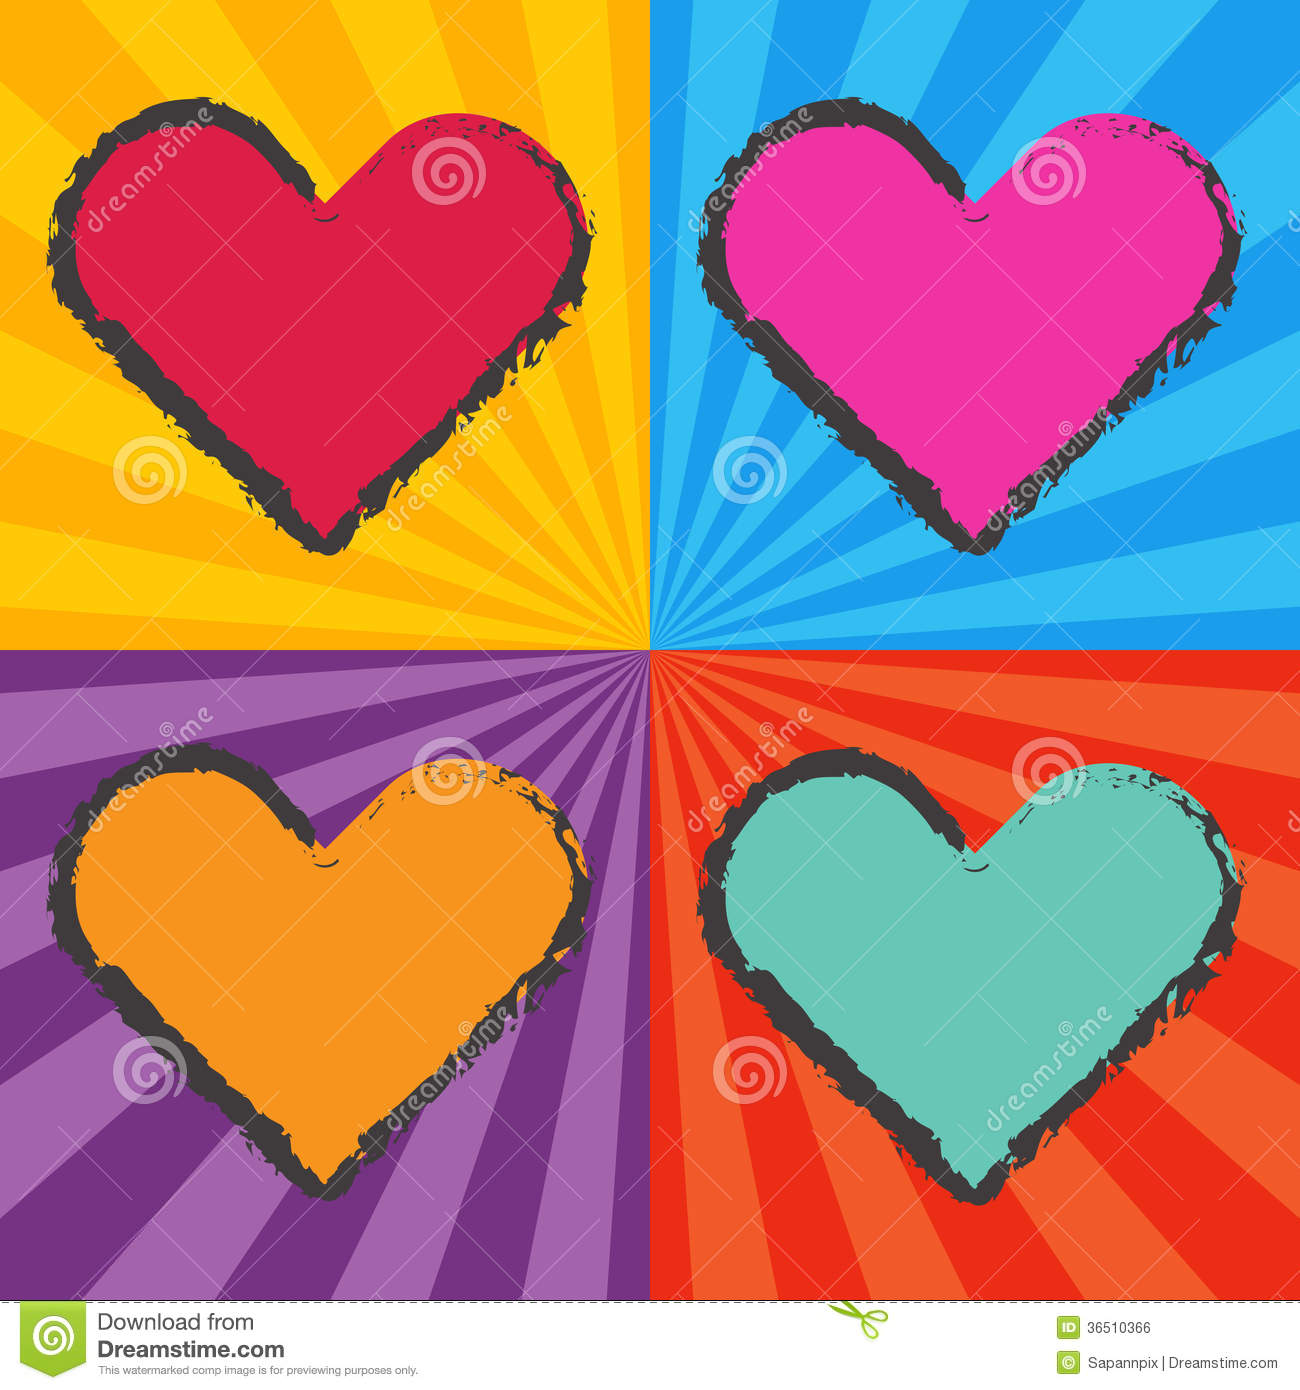 Pop Art Heart Royalty Free Stock Image - Image: 36510366